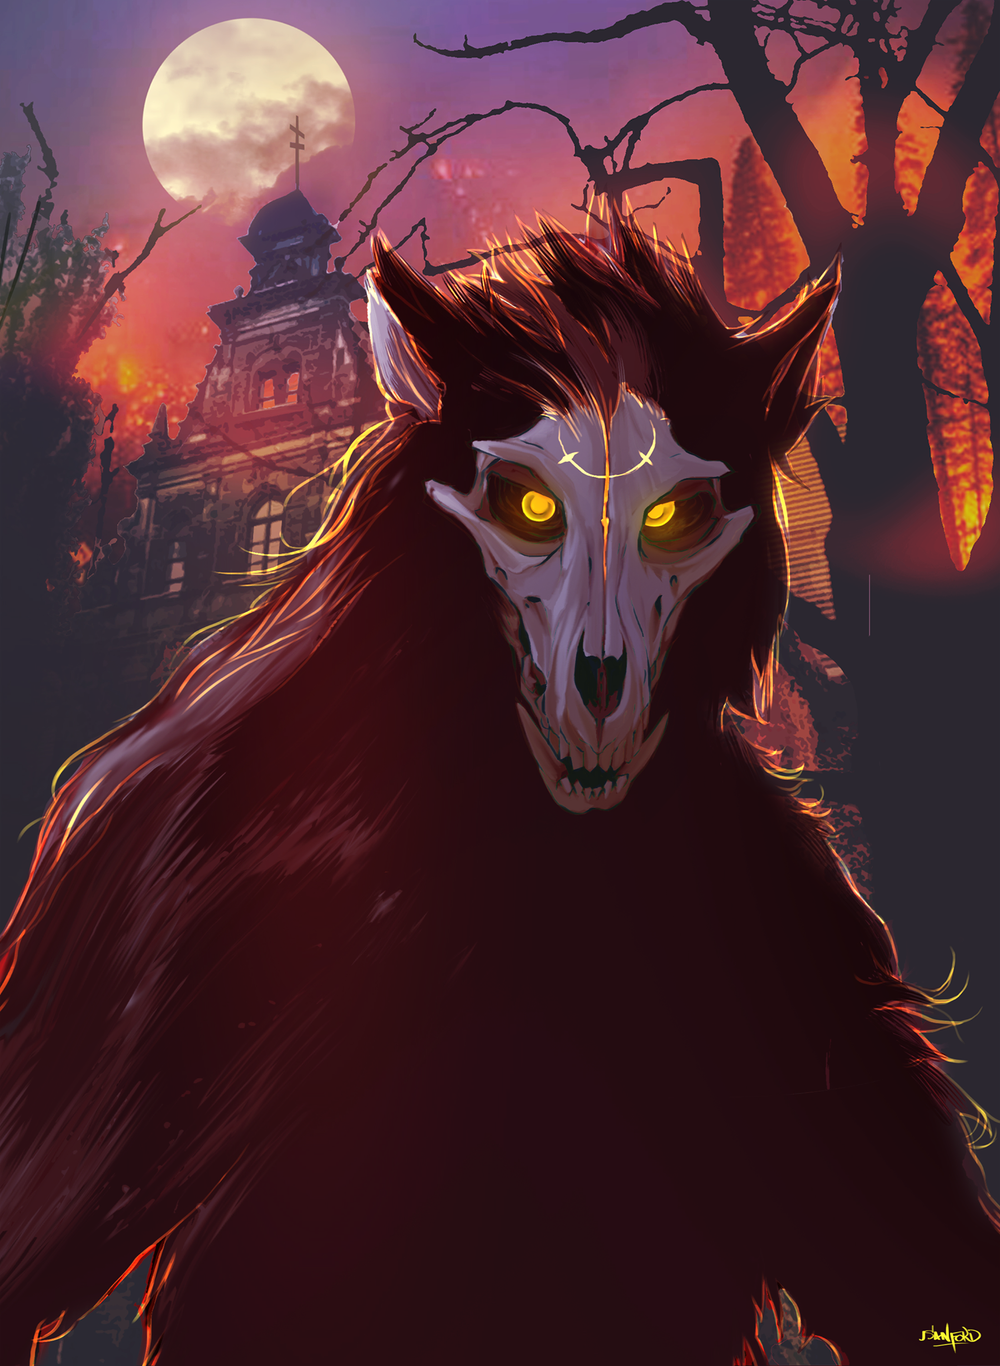 Werewolf card with red / yellow lighting.